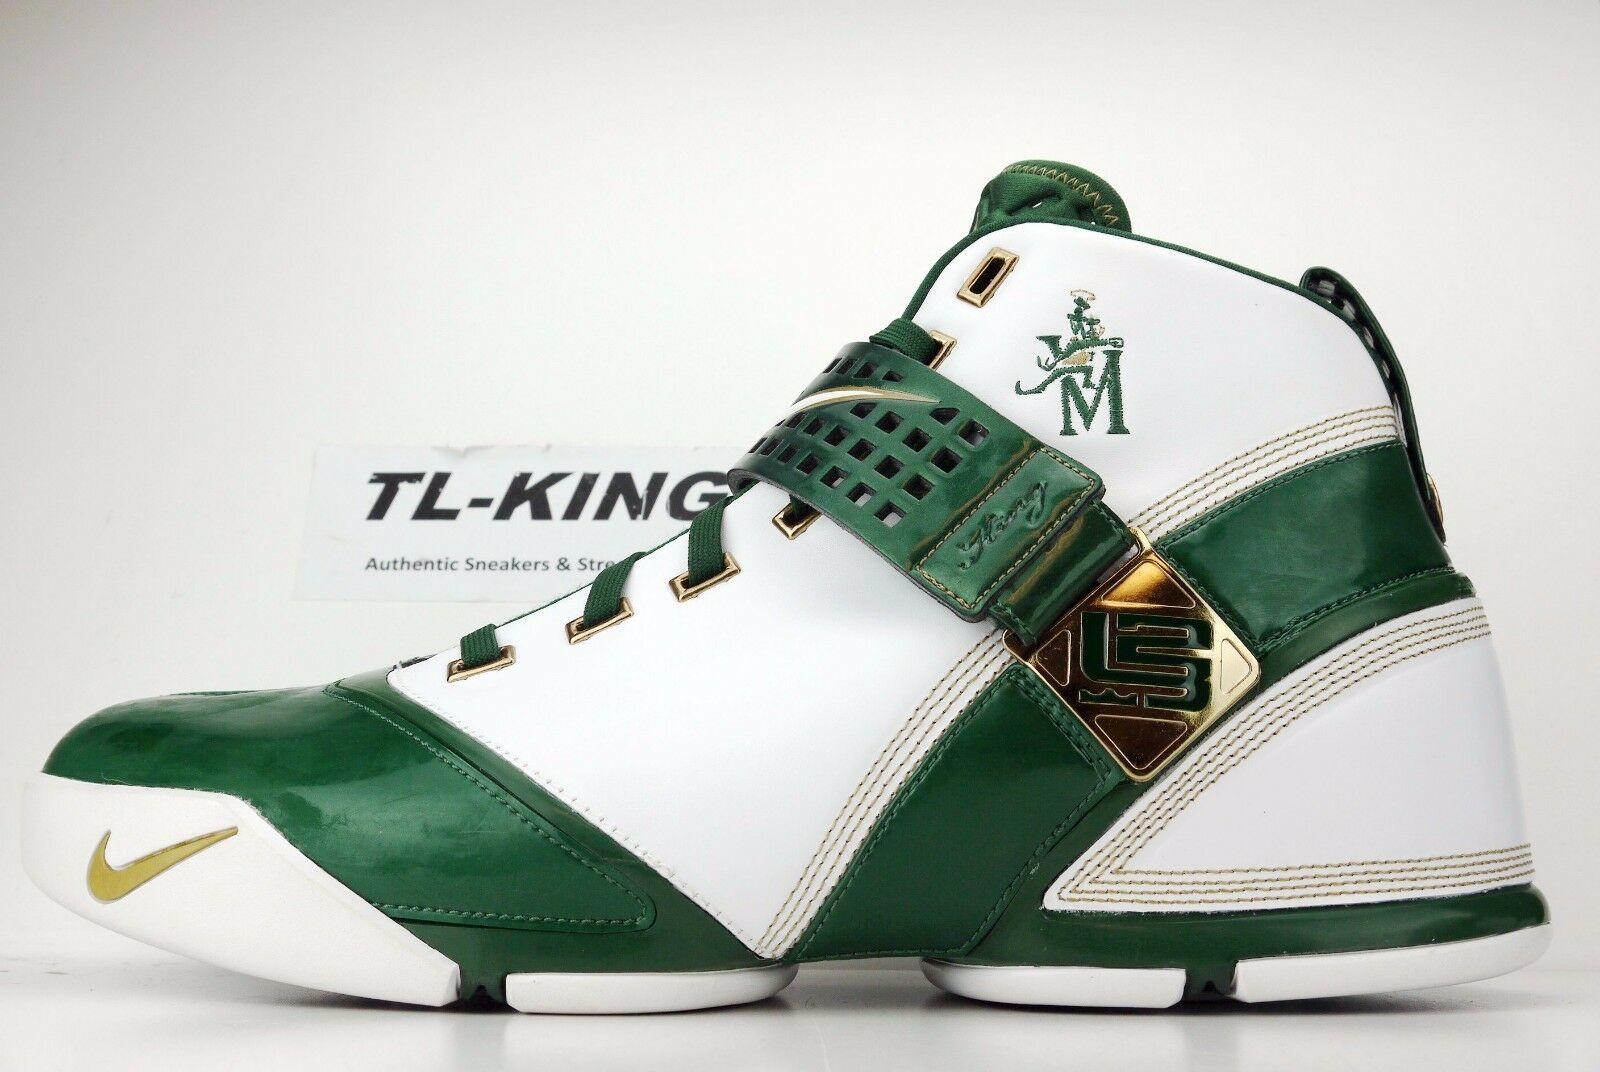 Nike Zoom Lebron 5 SVSM High School Home Sample PE Player Exclusive Promo 16 The latest discount shoes for men and women